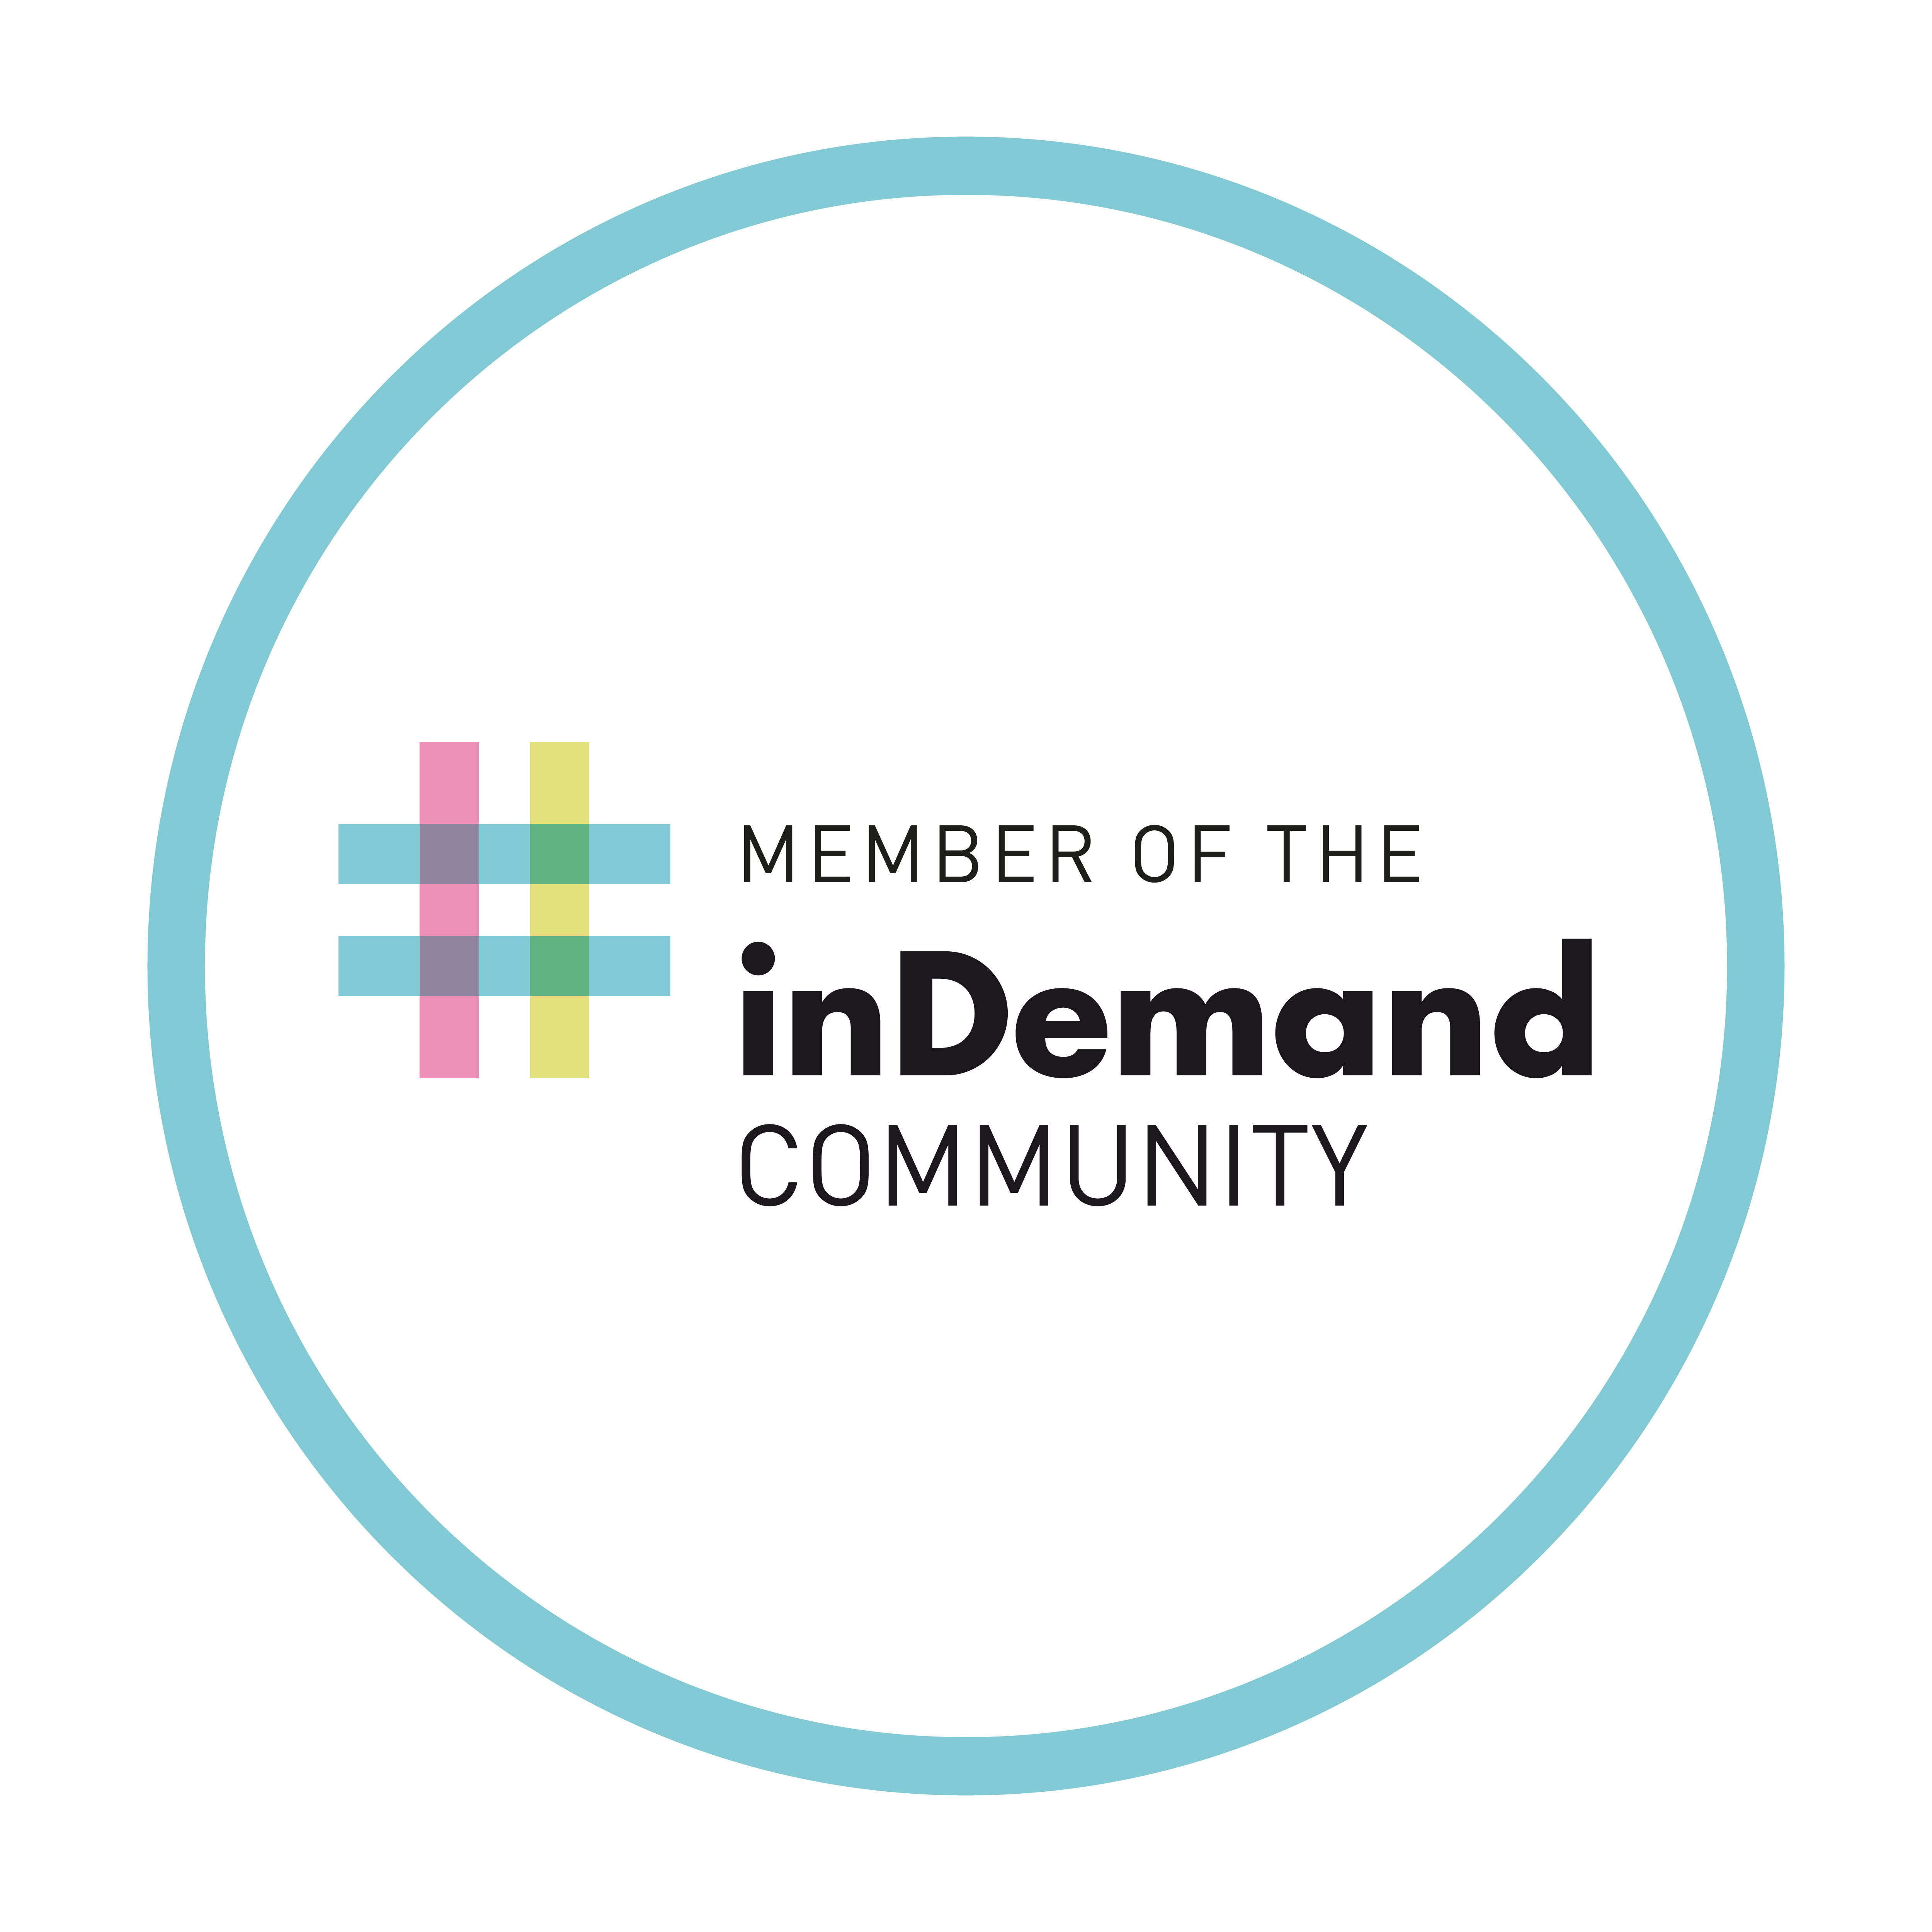 Join the inDemand Community